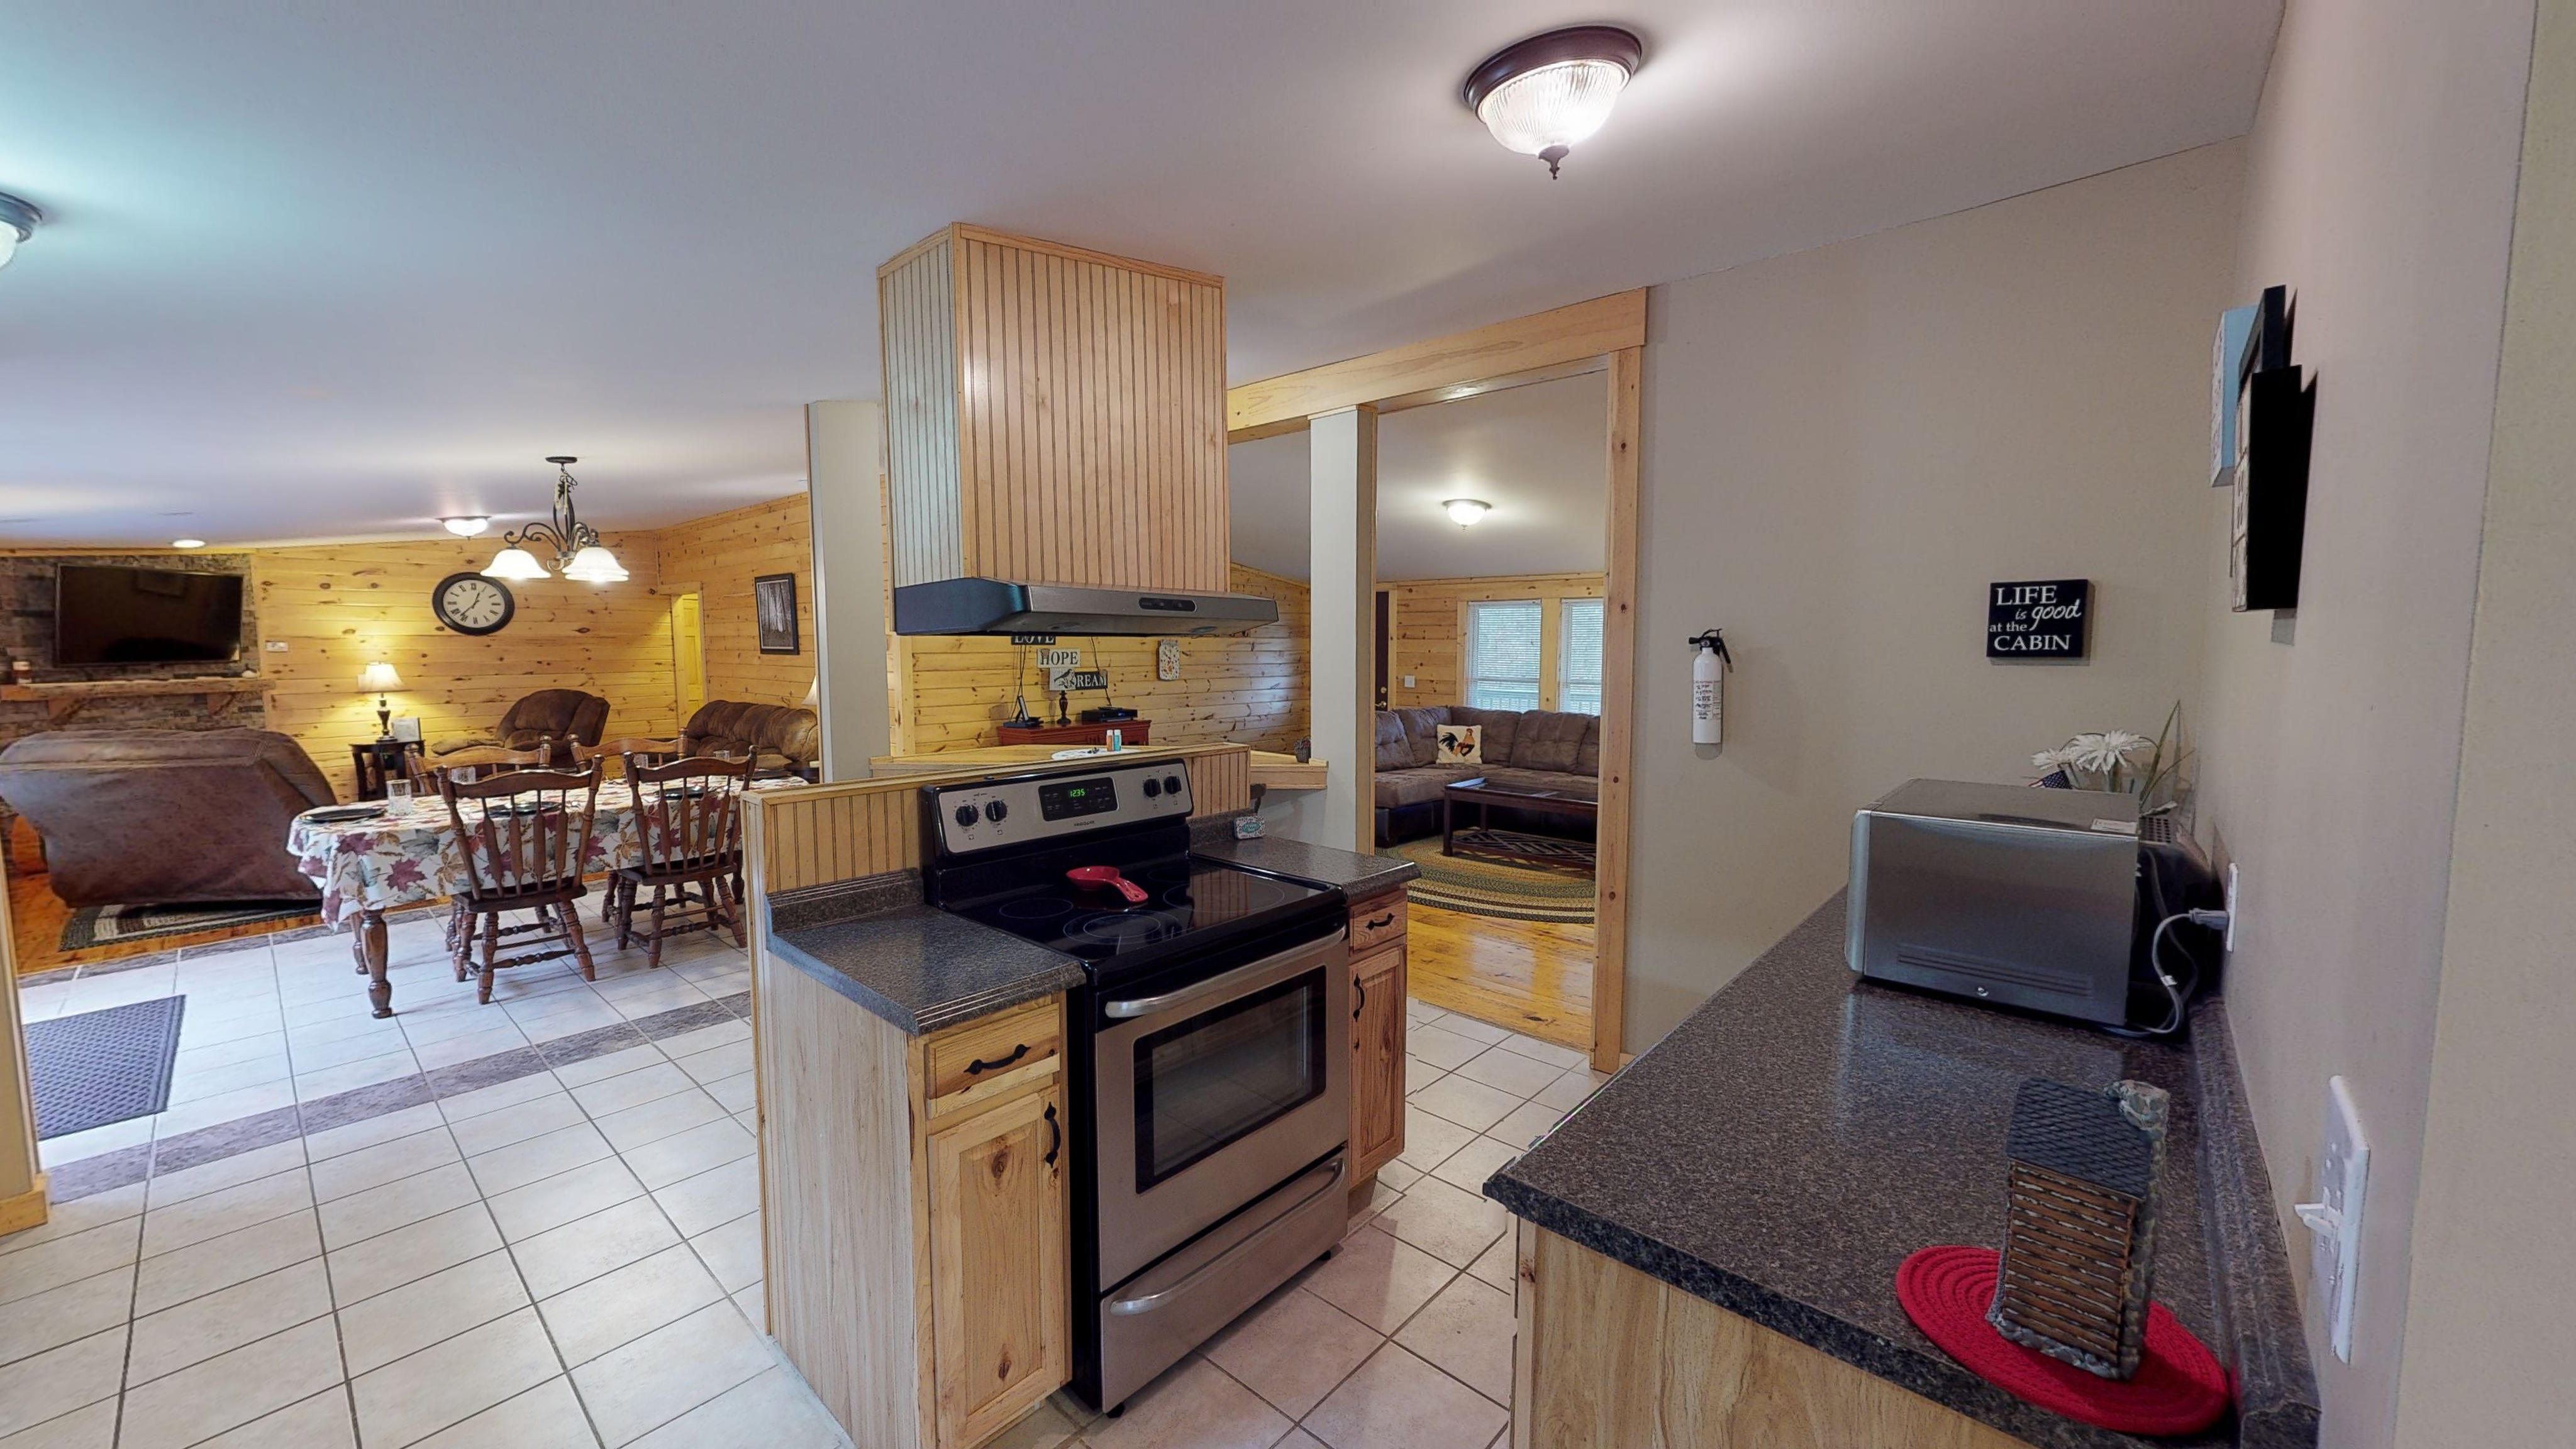 Bobcat Cabin Kitchen - Kitchen comes fully equipped with all the amenities  appliances you need for a getaway! Contact us if you have specific questions about the amenities. Guests just need to bring food!